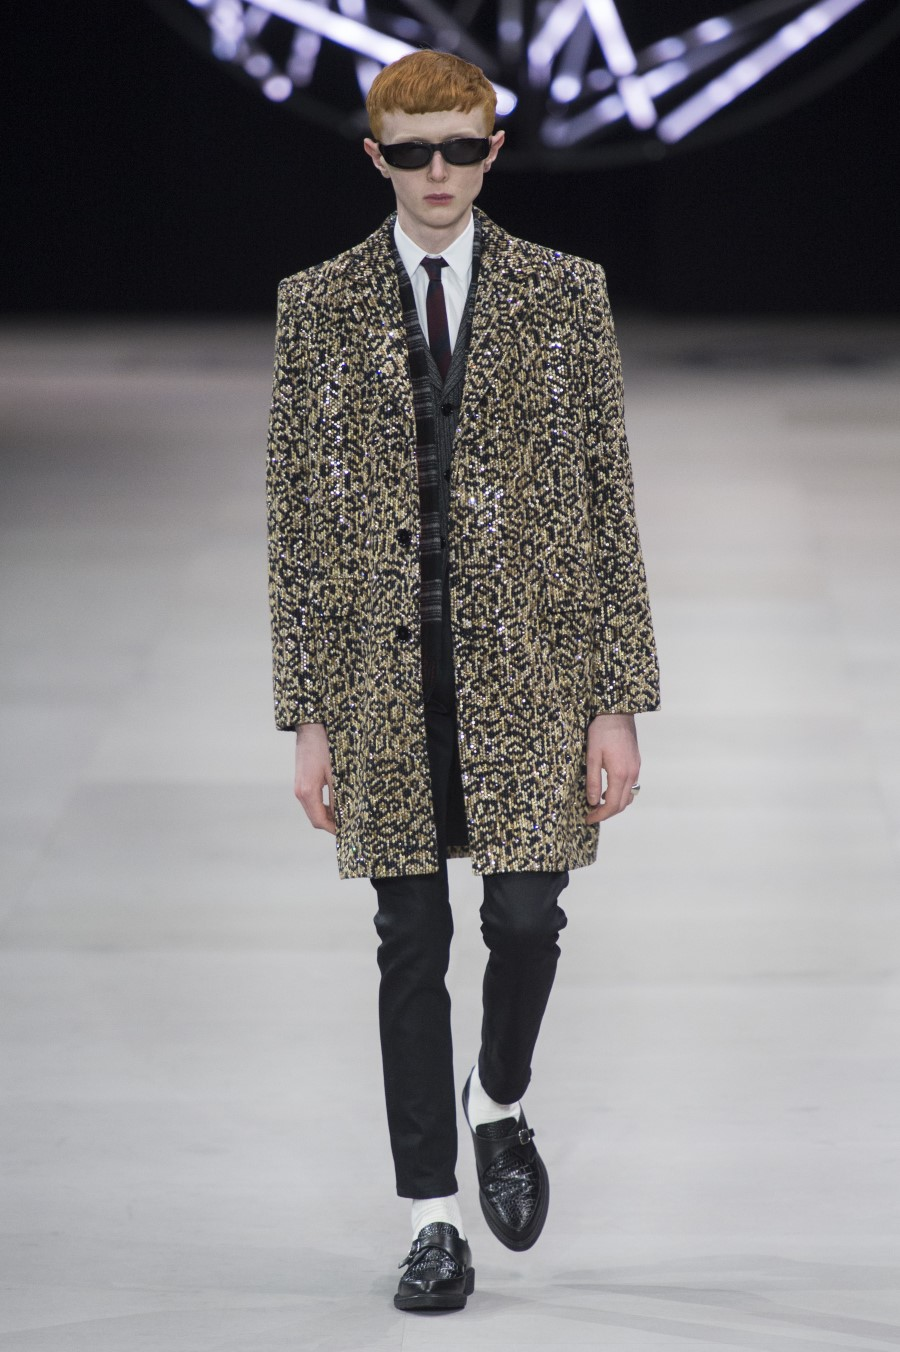 Celine Men's Fall Winter 2019 - Paris Fashion Week